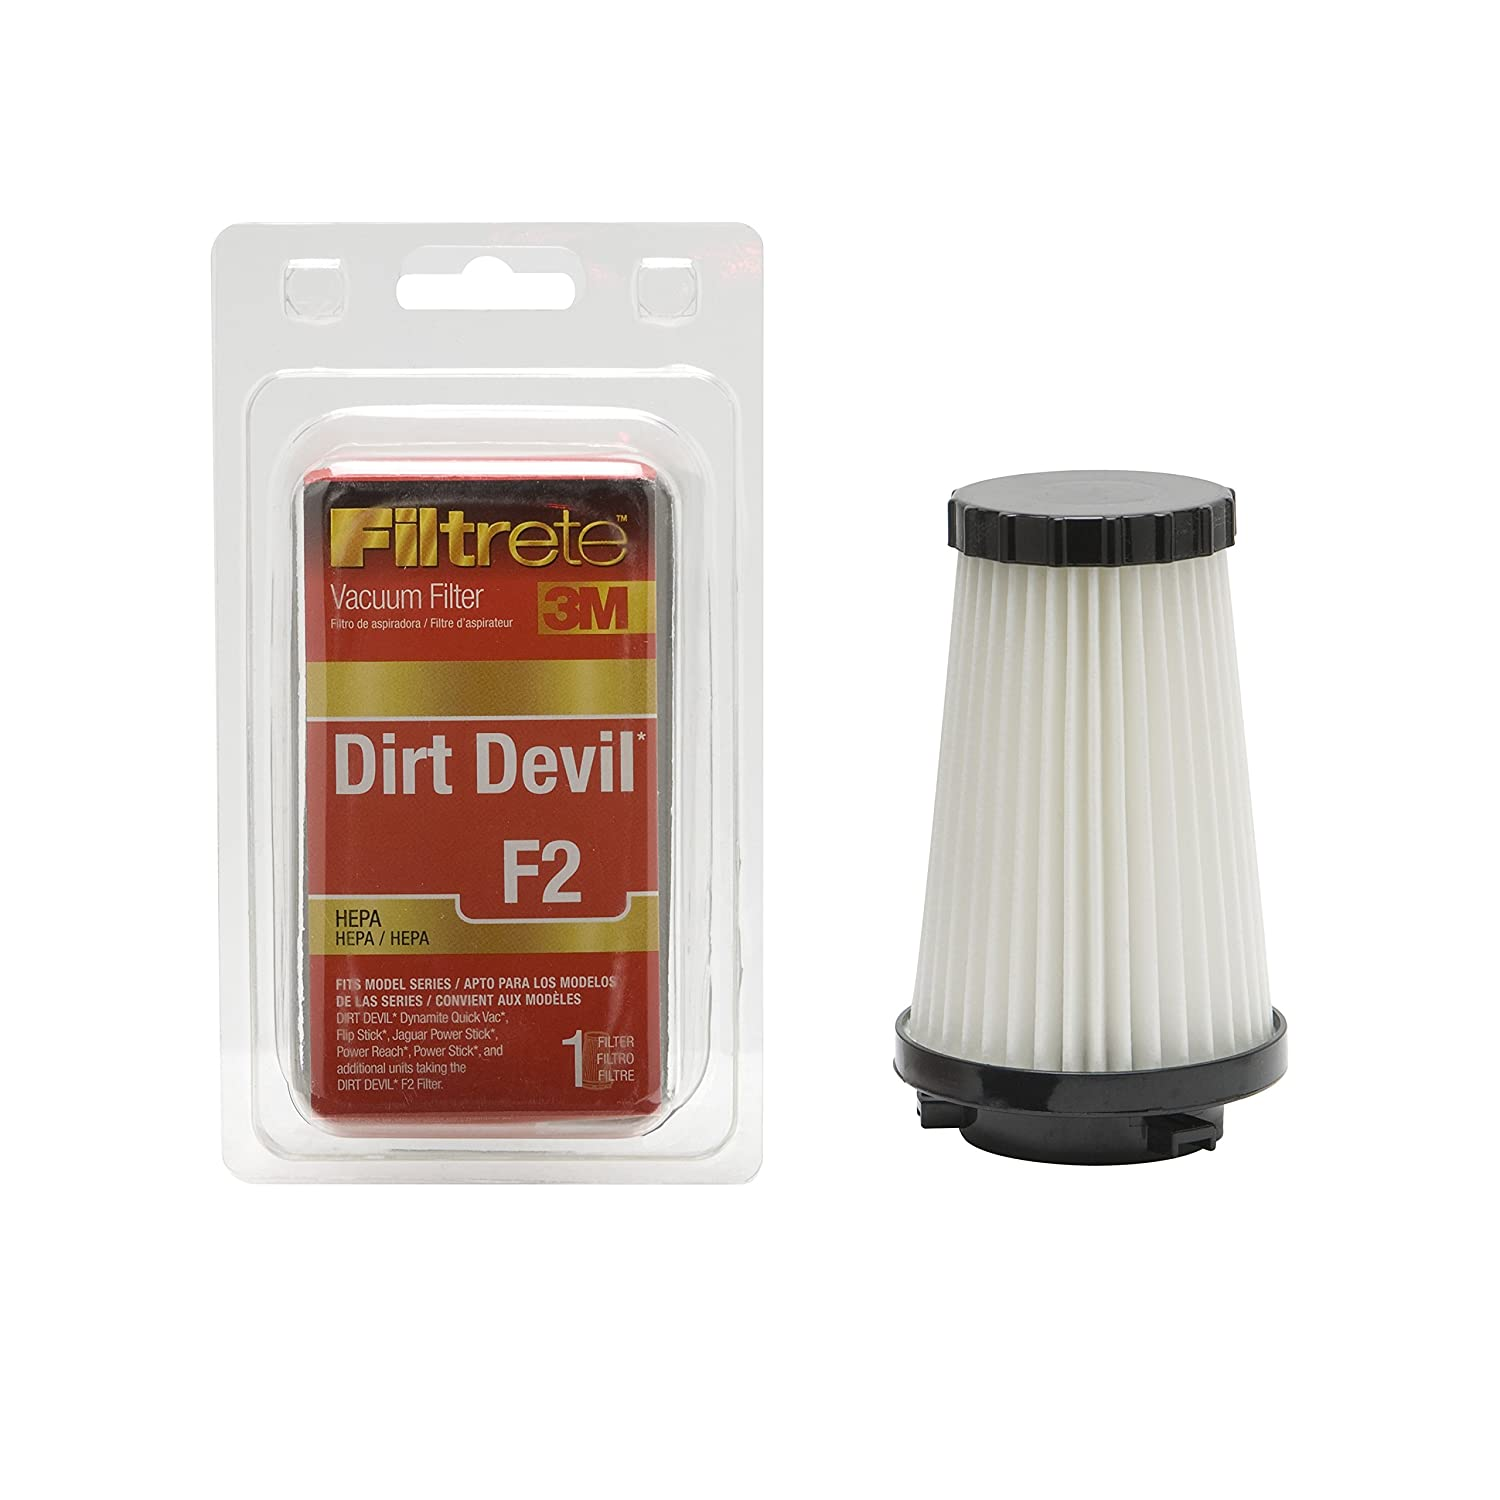 Amazon.com: 3M Filtrete Dirt Devil F2 HEPA Vacuum Filter - 1 filter(Colors  may vary): Home & Kitchen